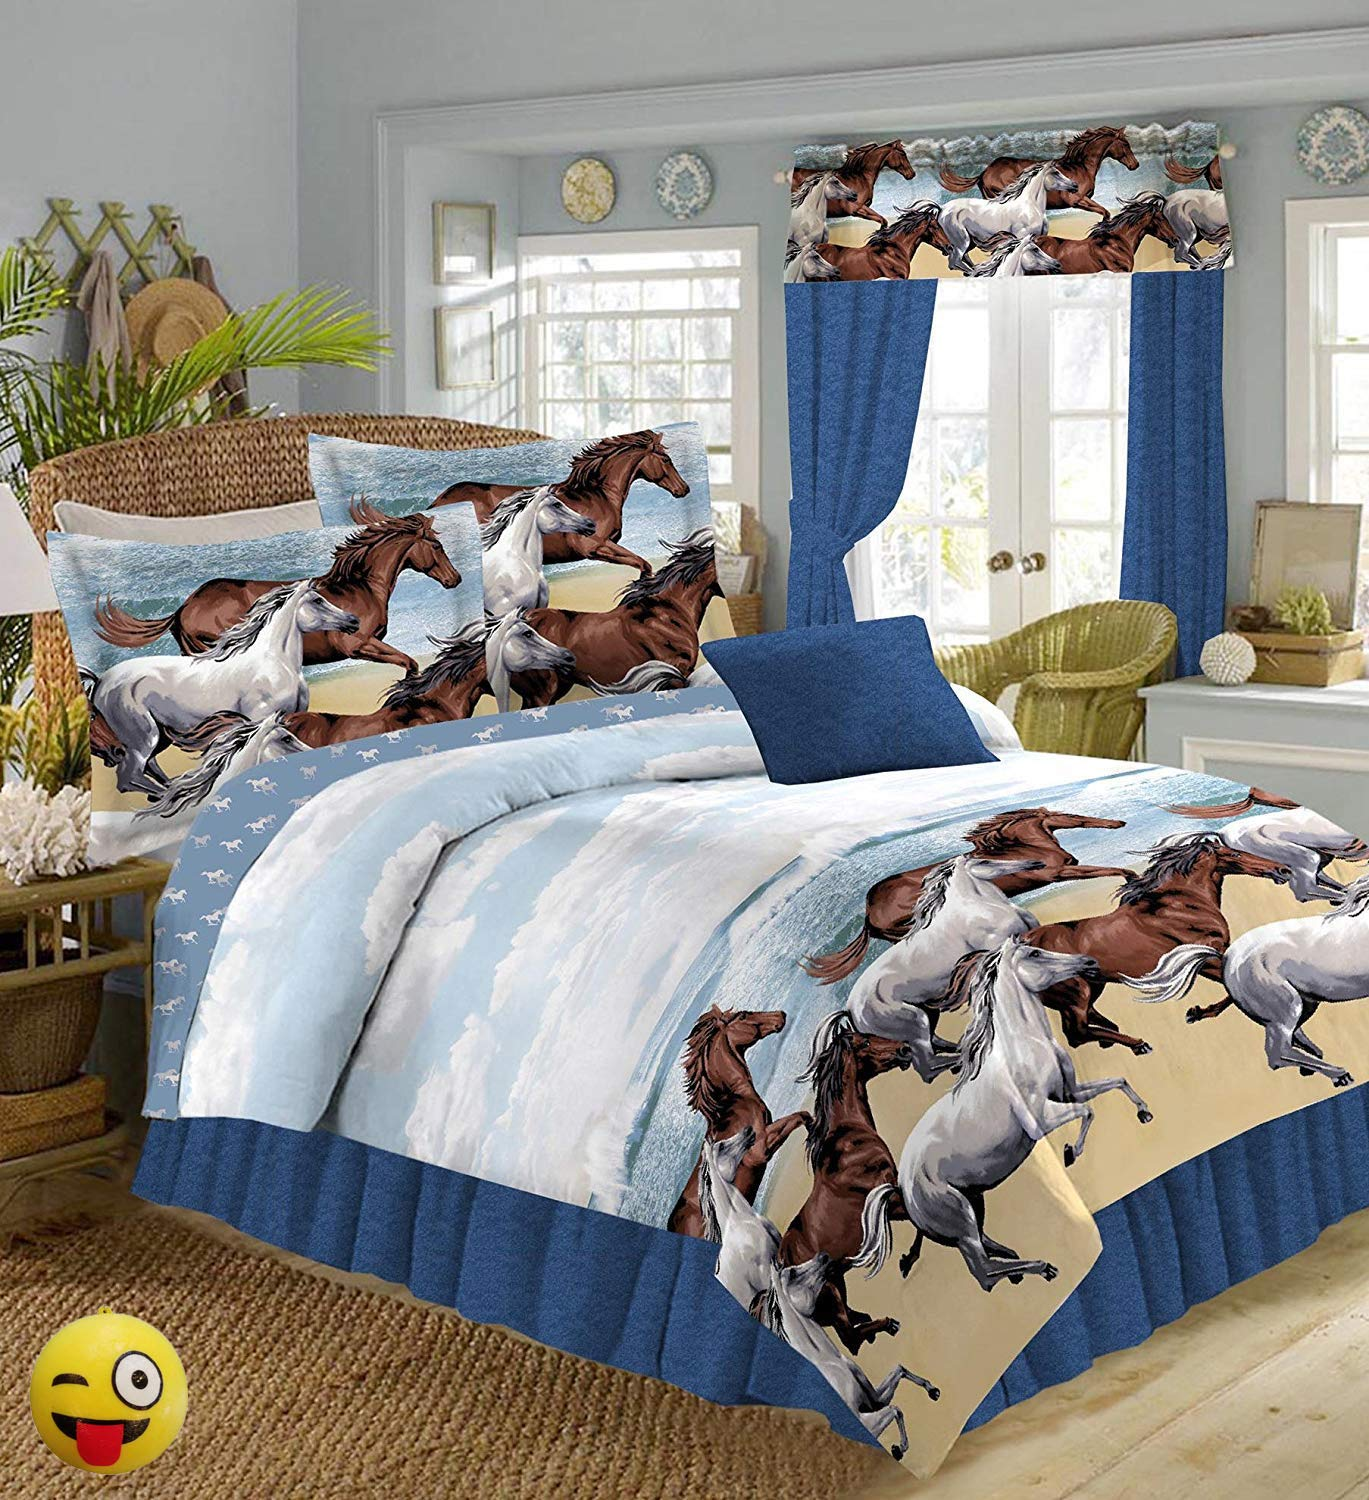 COASTAL BEACH PONY HORSE WESTERN 6 Pieces TWIN SIZE COMFORTER Bed in a Bag Set